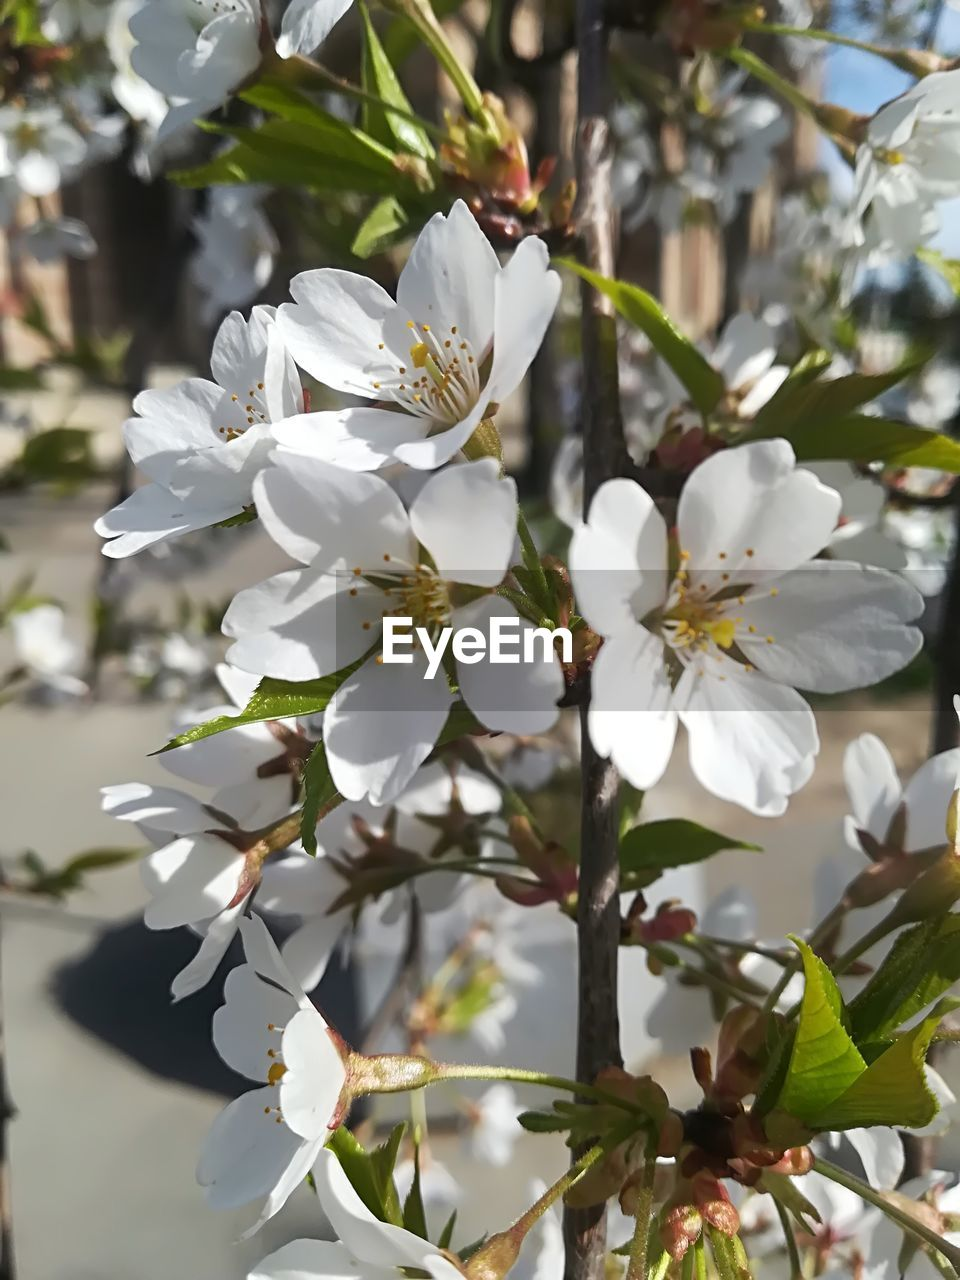 flowering plant, plant, flower, vulnerability, fragility, beauty in nature, growth, petal, freshness, white color, inflorescence, close-up, flower head, focus on foreground, pollen, nature, no people, tree, day, blossom, springtime, cherry blossom, spring